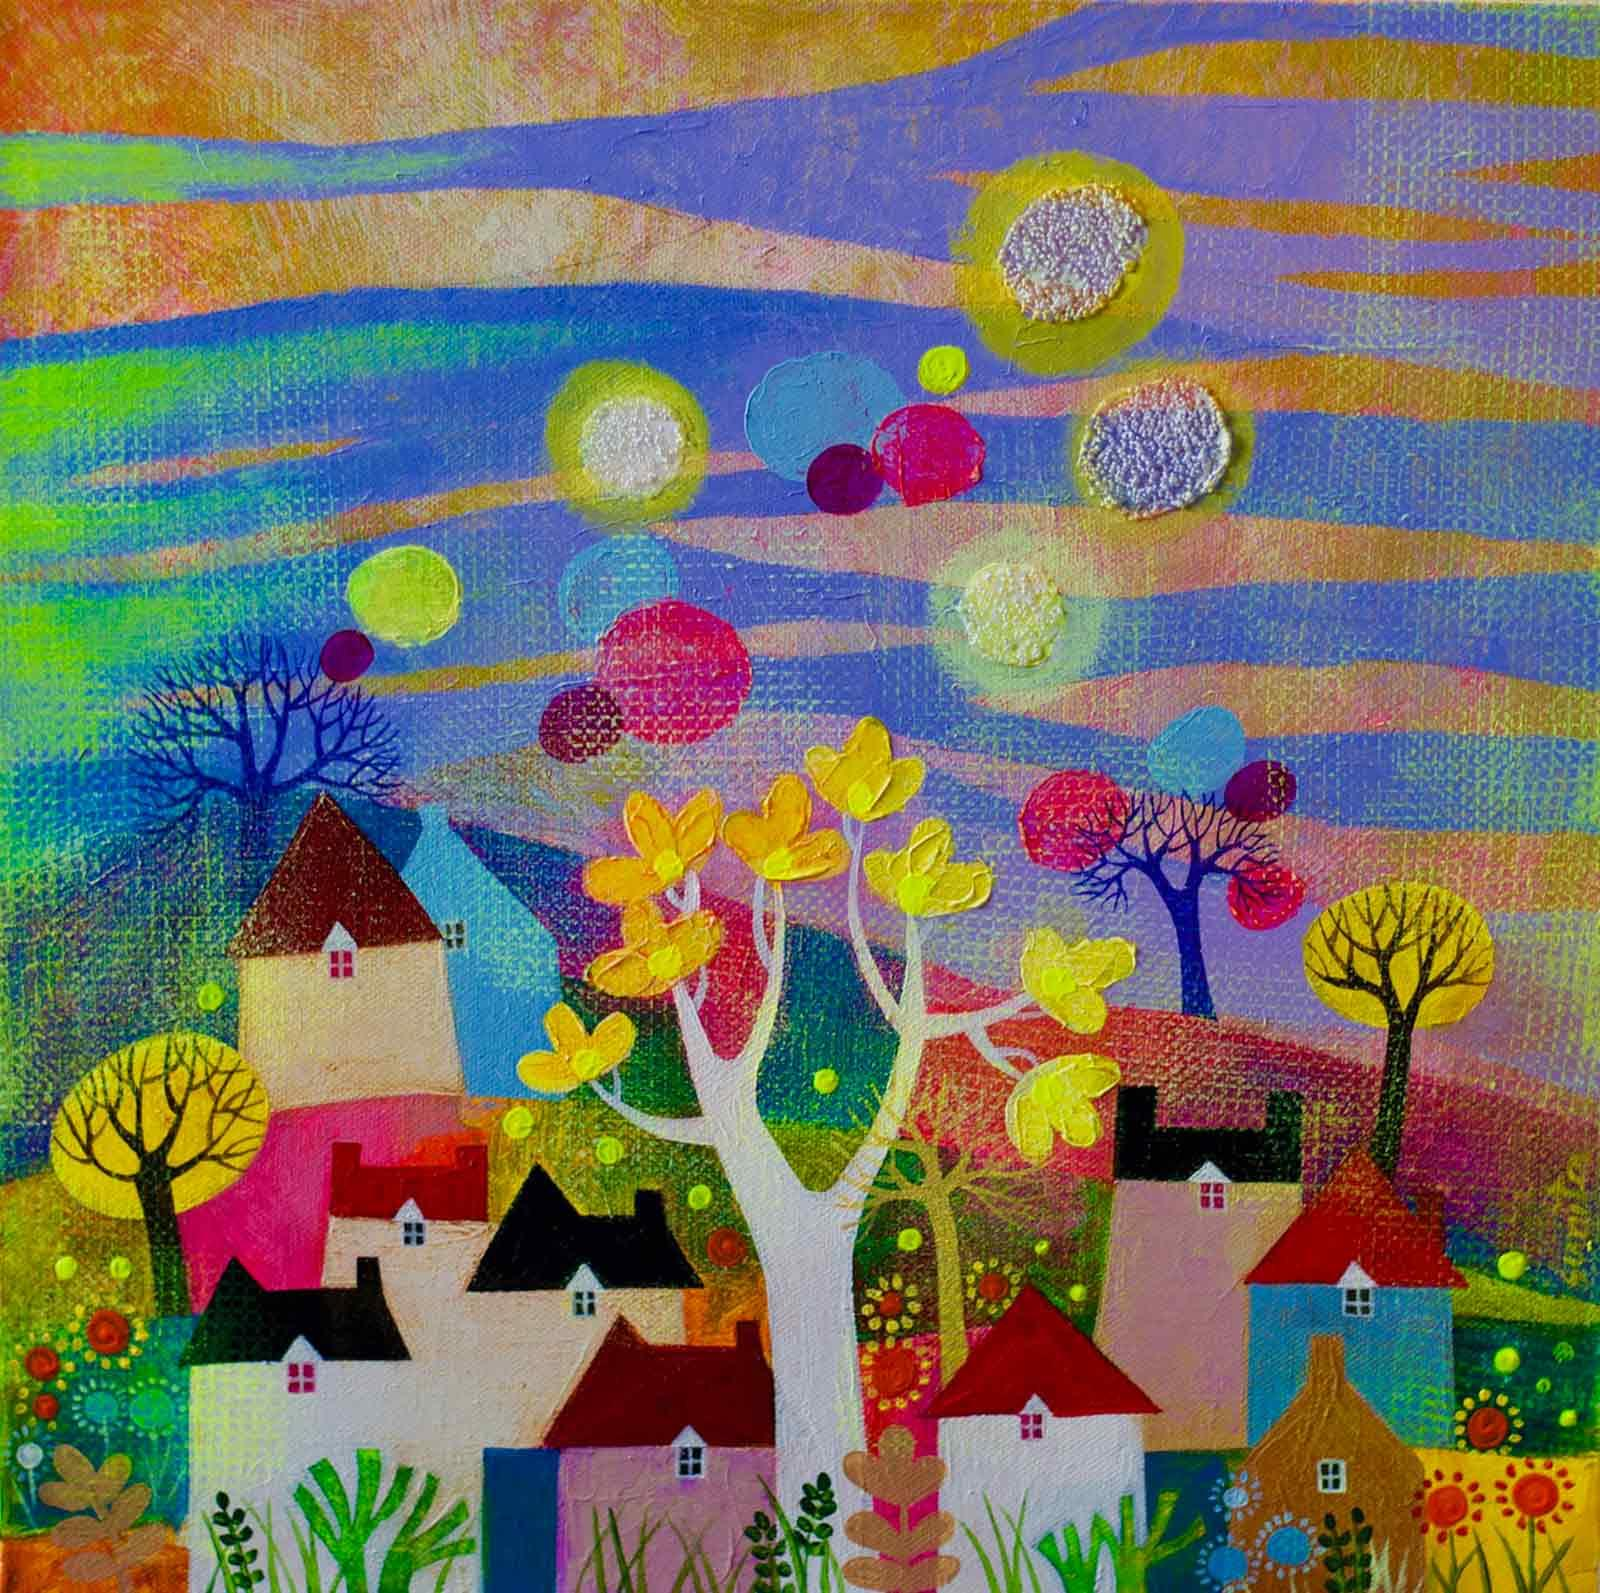 Bright Day, Sunita Khedekar